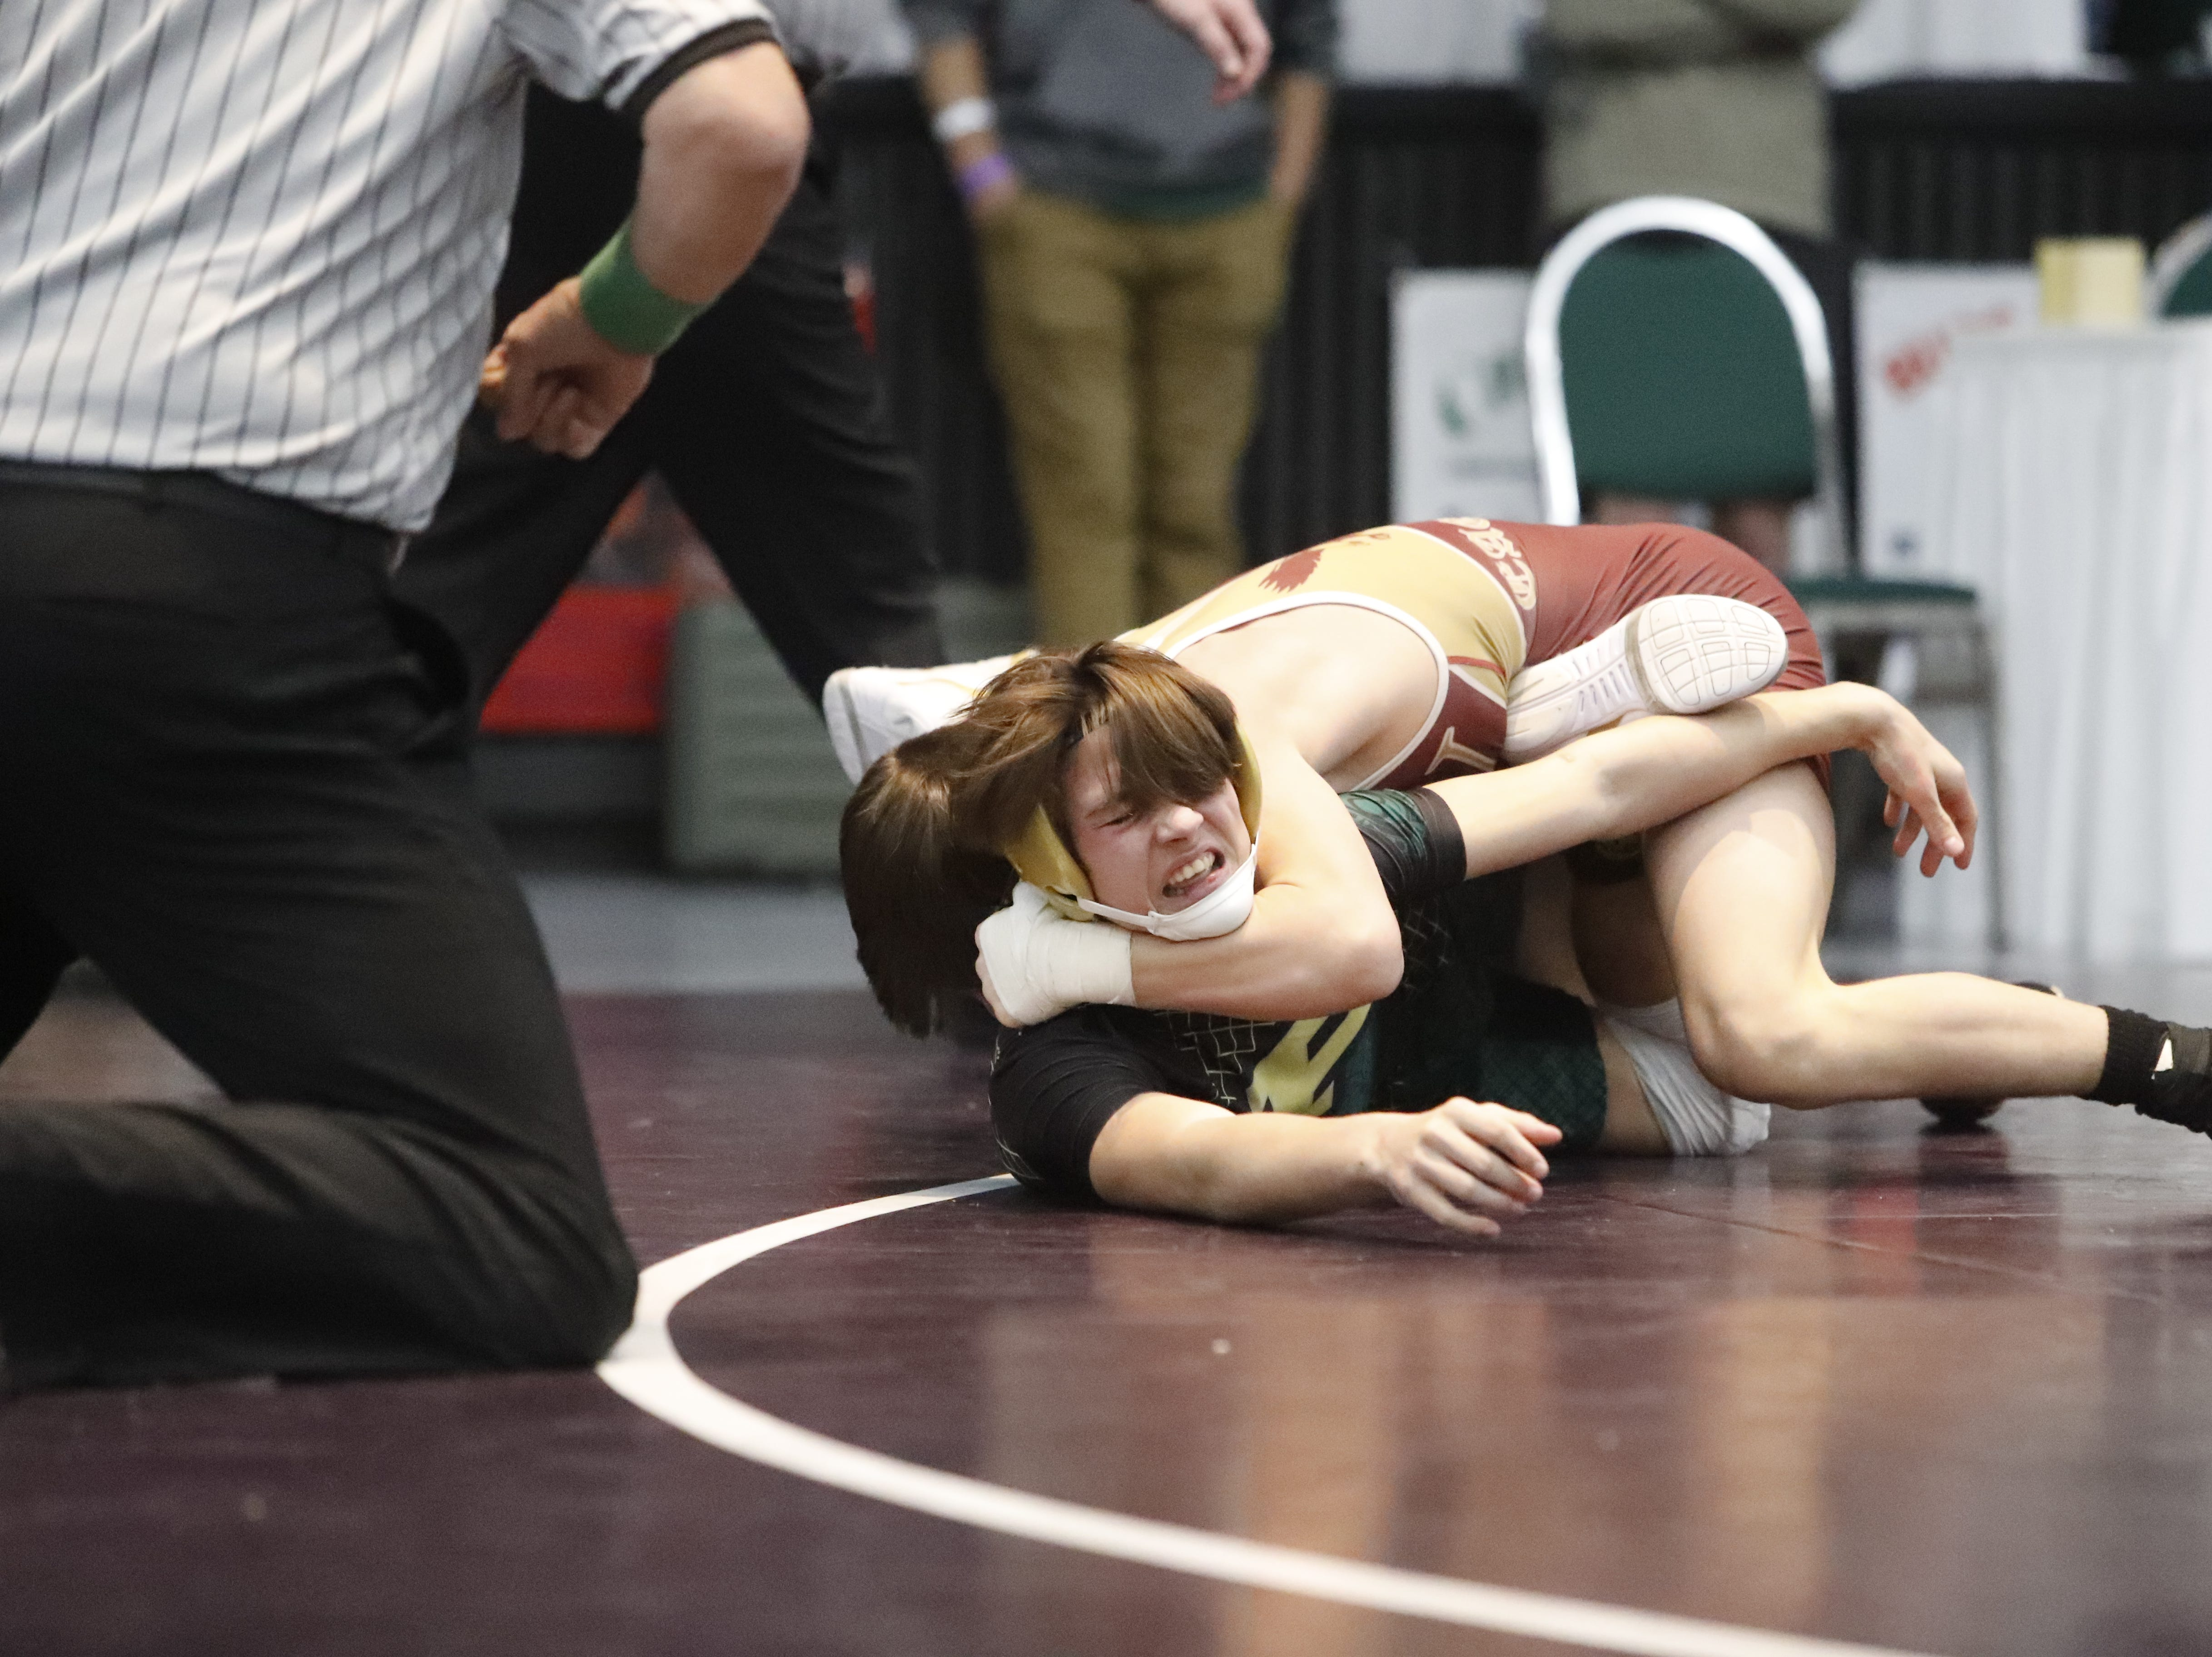 West Valley's Conner Edwards wraps up Paradise wrestler Stetson Morgan in the 120-pound third-place match at the Northern Section championships on Friday, Feb. 15, at the Redding Civic Auditorium.